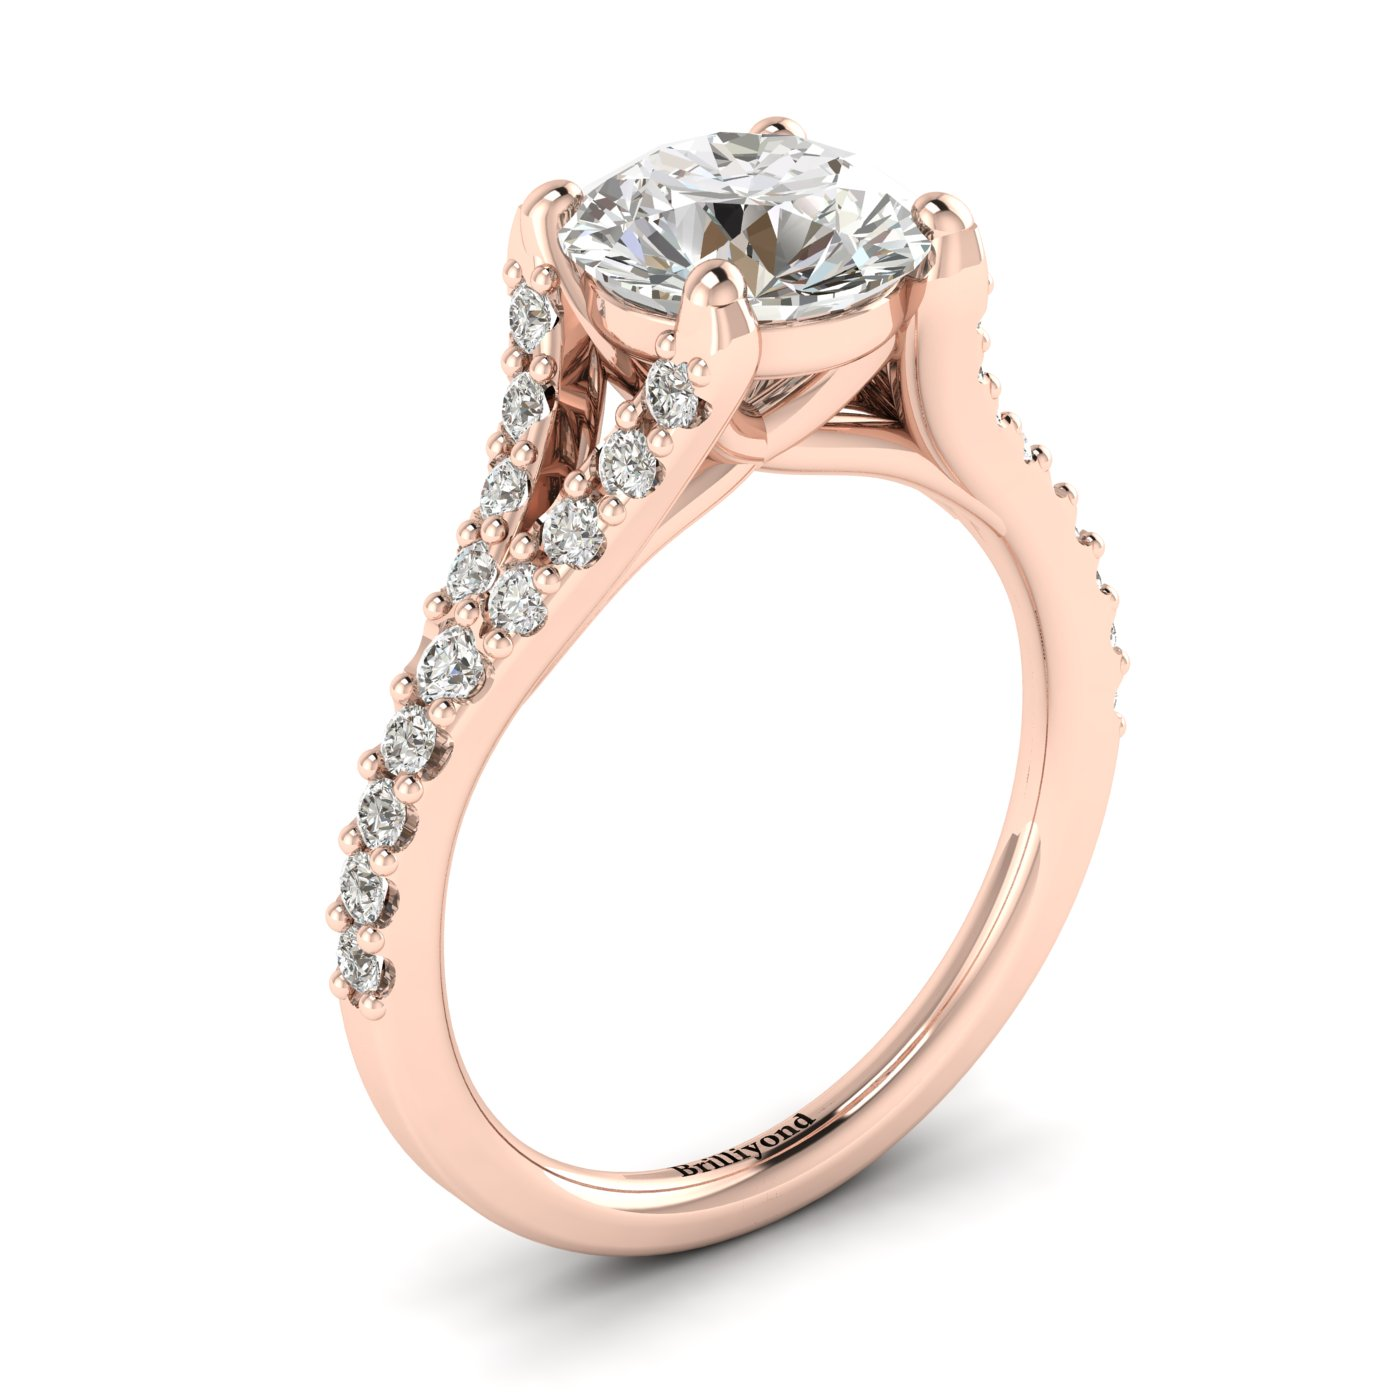 Juliana engagement ring with a classic pavé split shank set white created diamond accent stones.